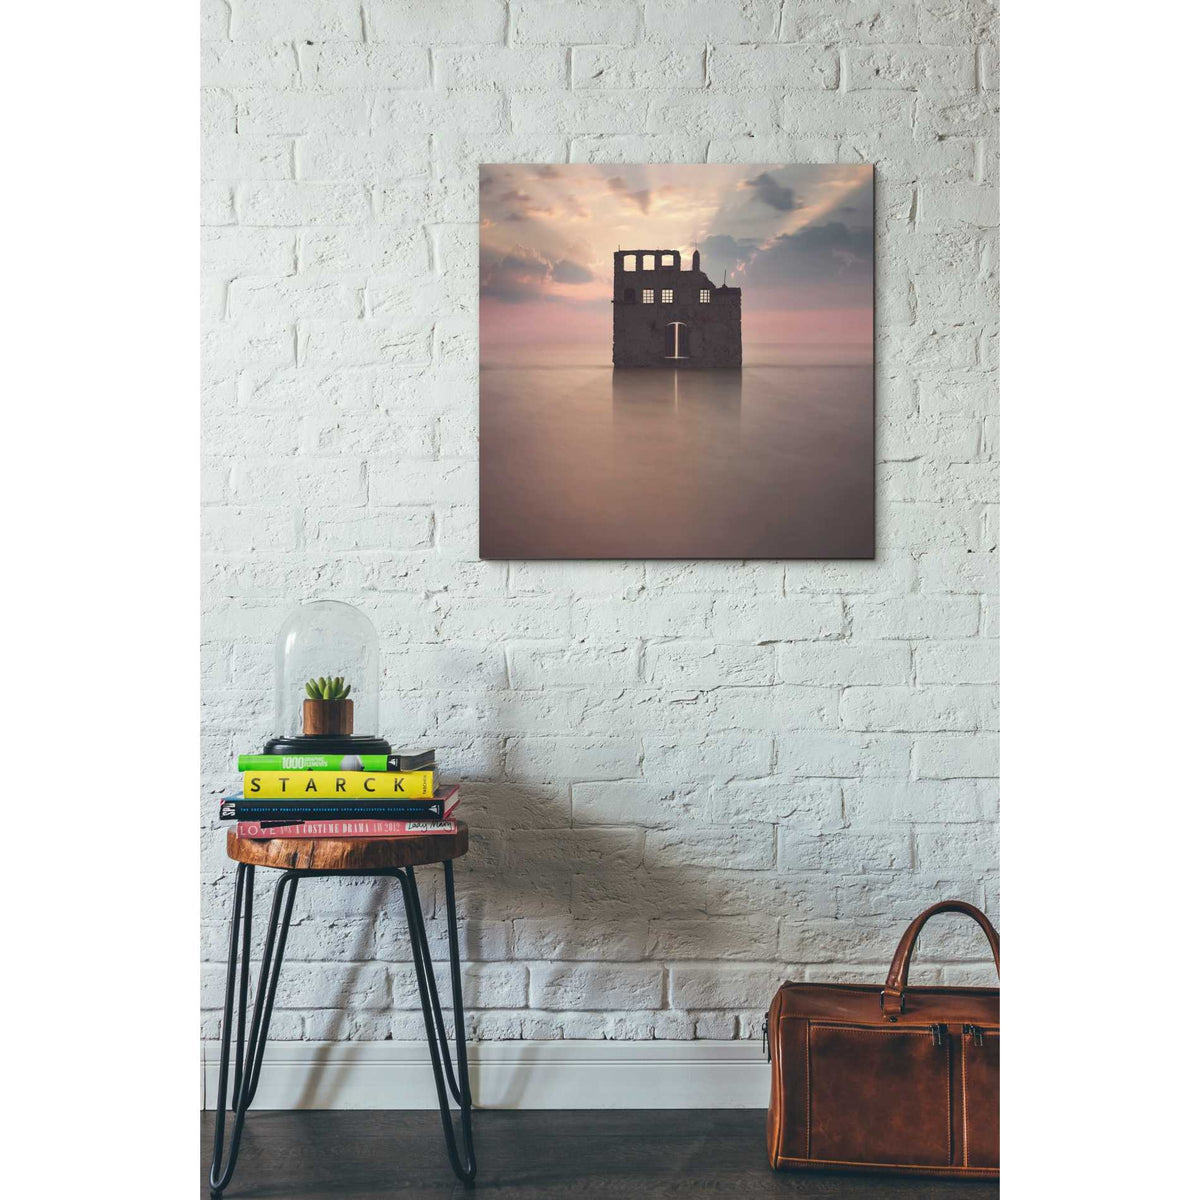 Epic Graffiti 'Watercastle' by Dariusz Klimczak, Canvas Wall Art,26 x 26